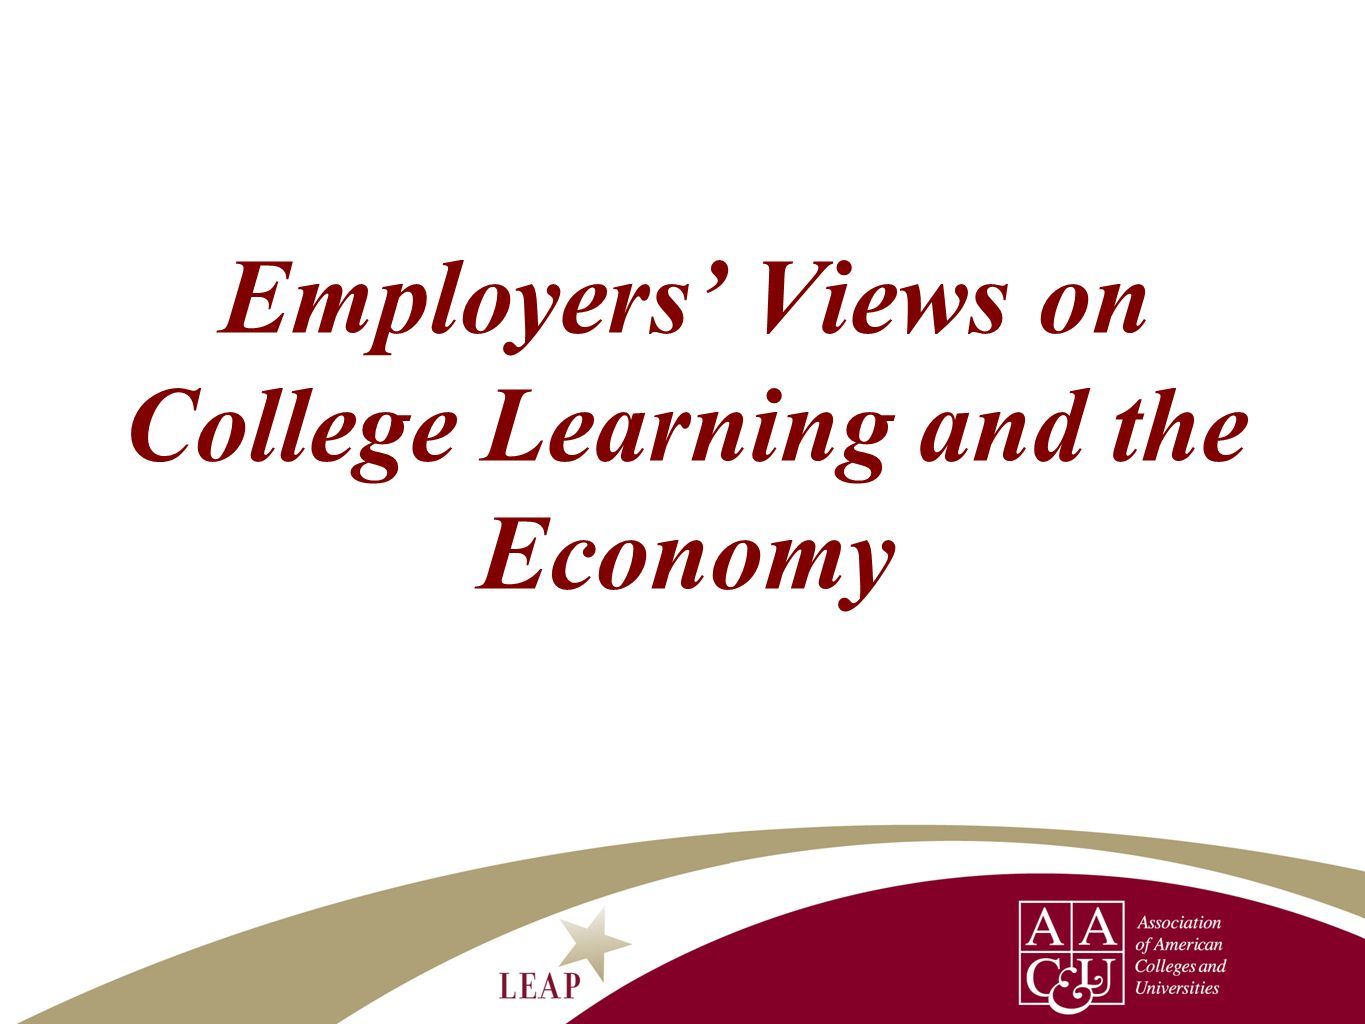 Employers' Views on College Learning and the Economy